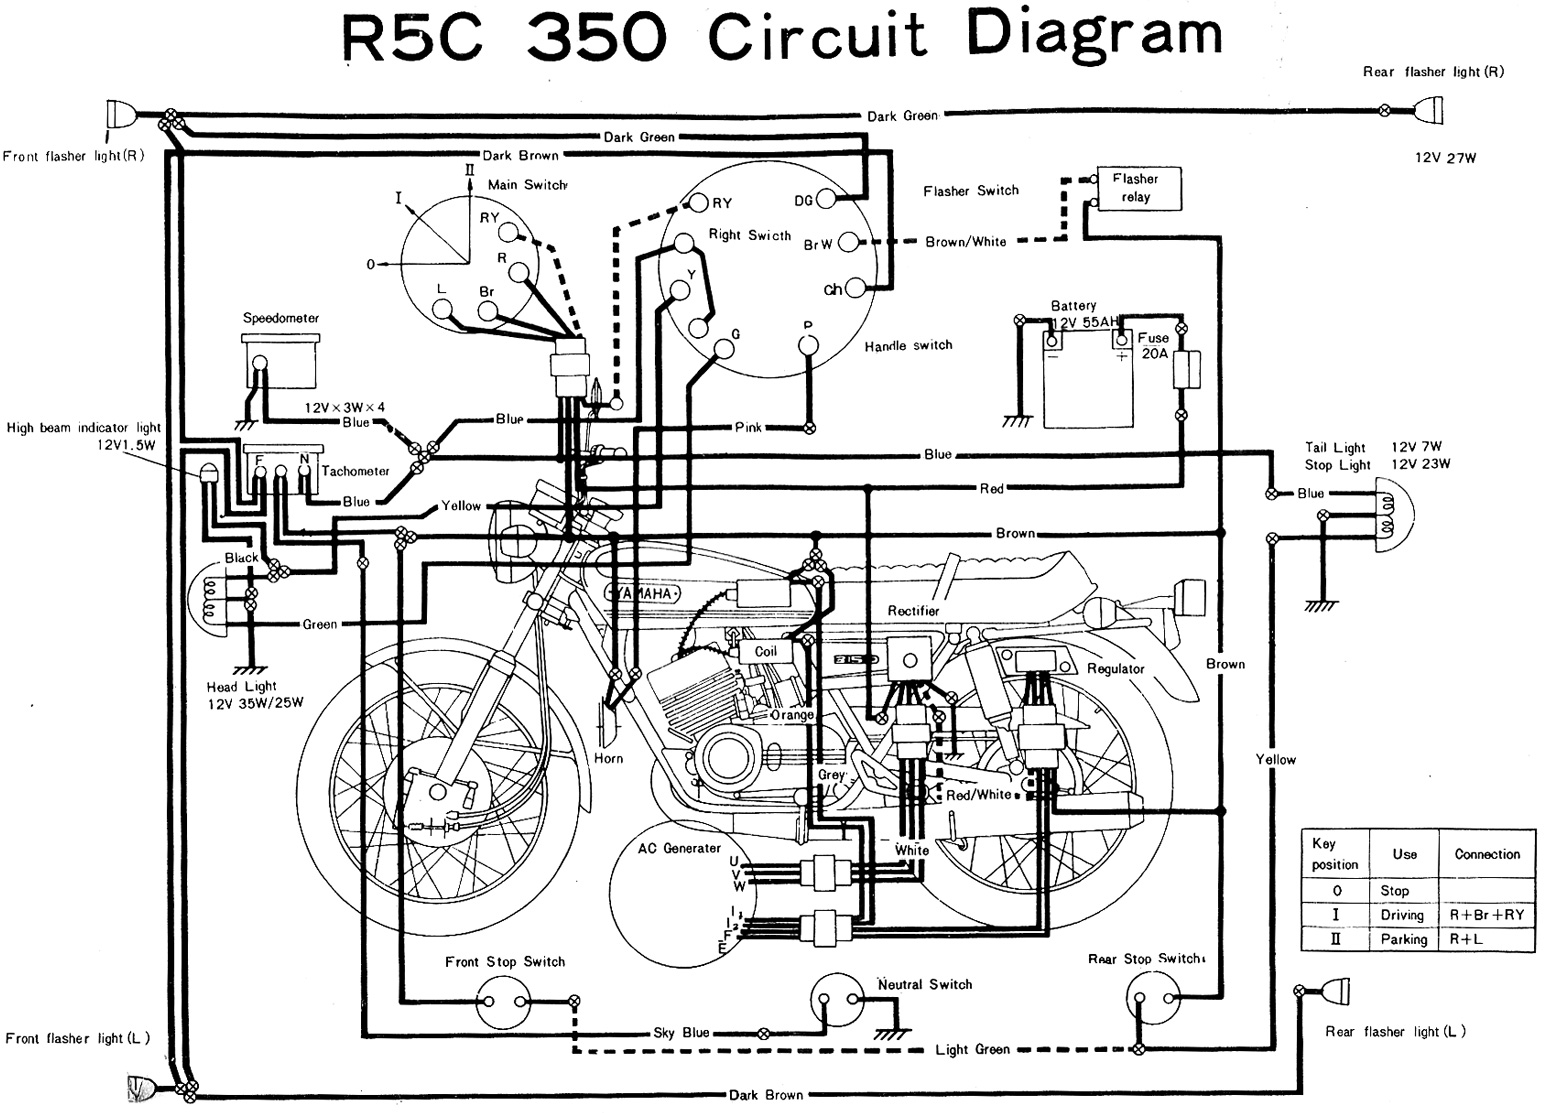 Yamaha R5C 350 Electrical Wiring Diagram1 motorcycle wiring diagrams kawasaki motorcycle wiring diagrams at edmiracle.co